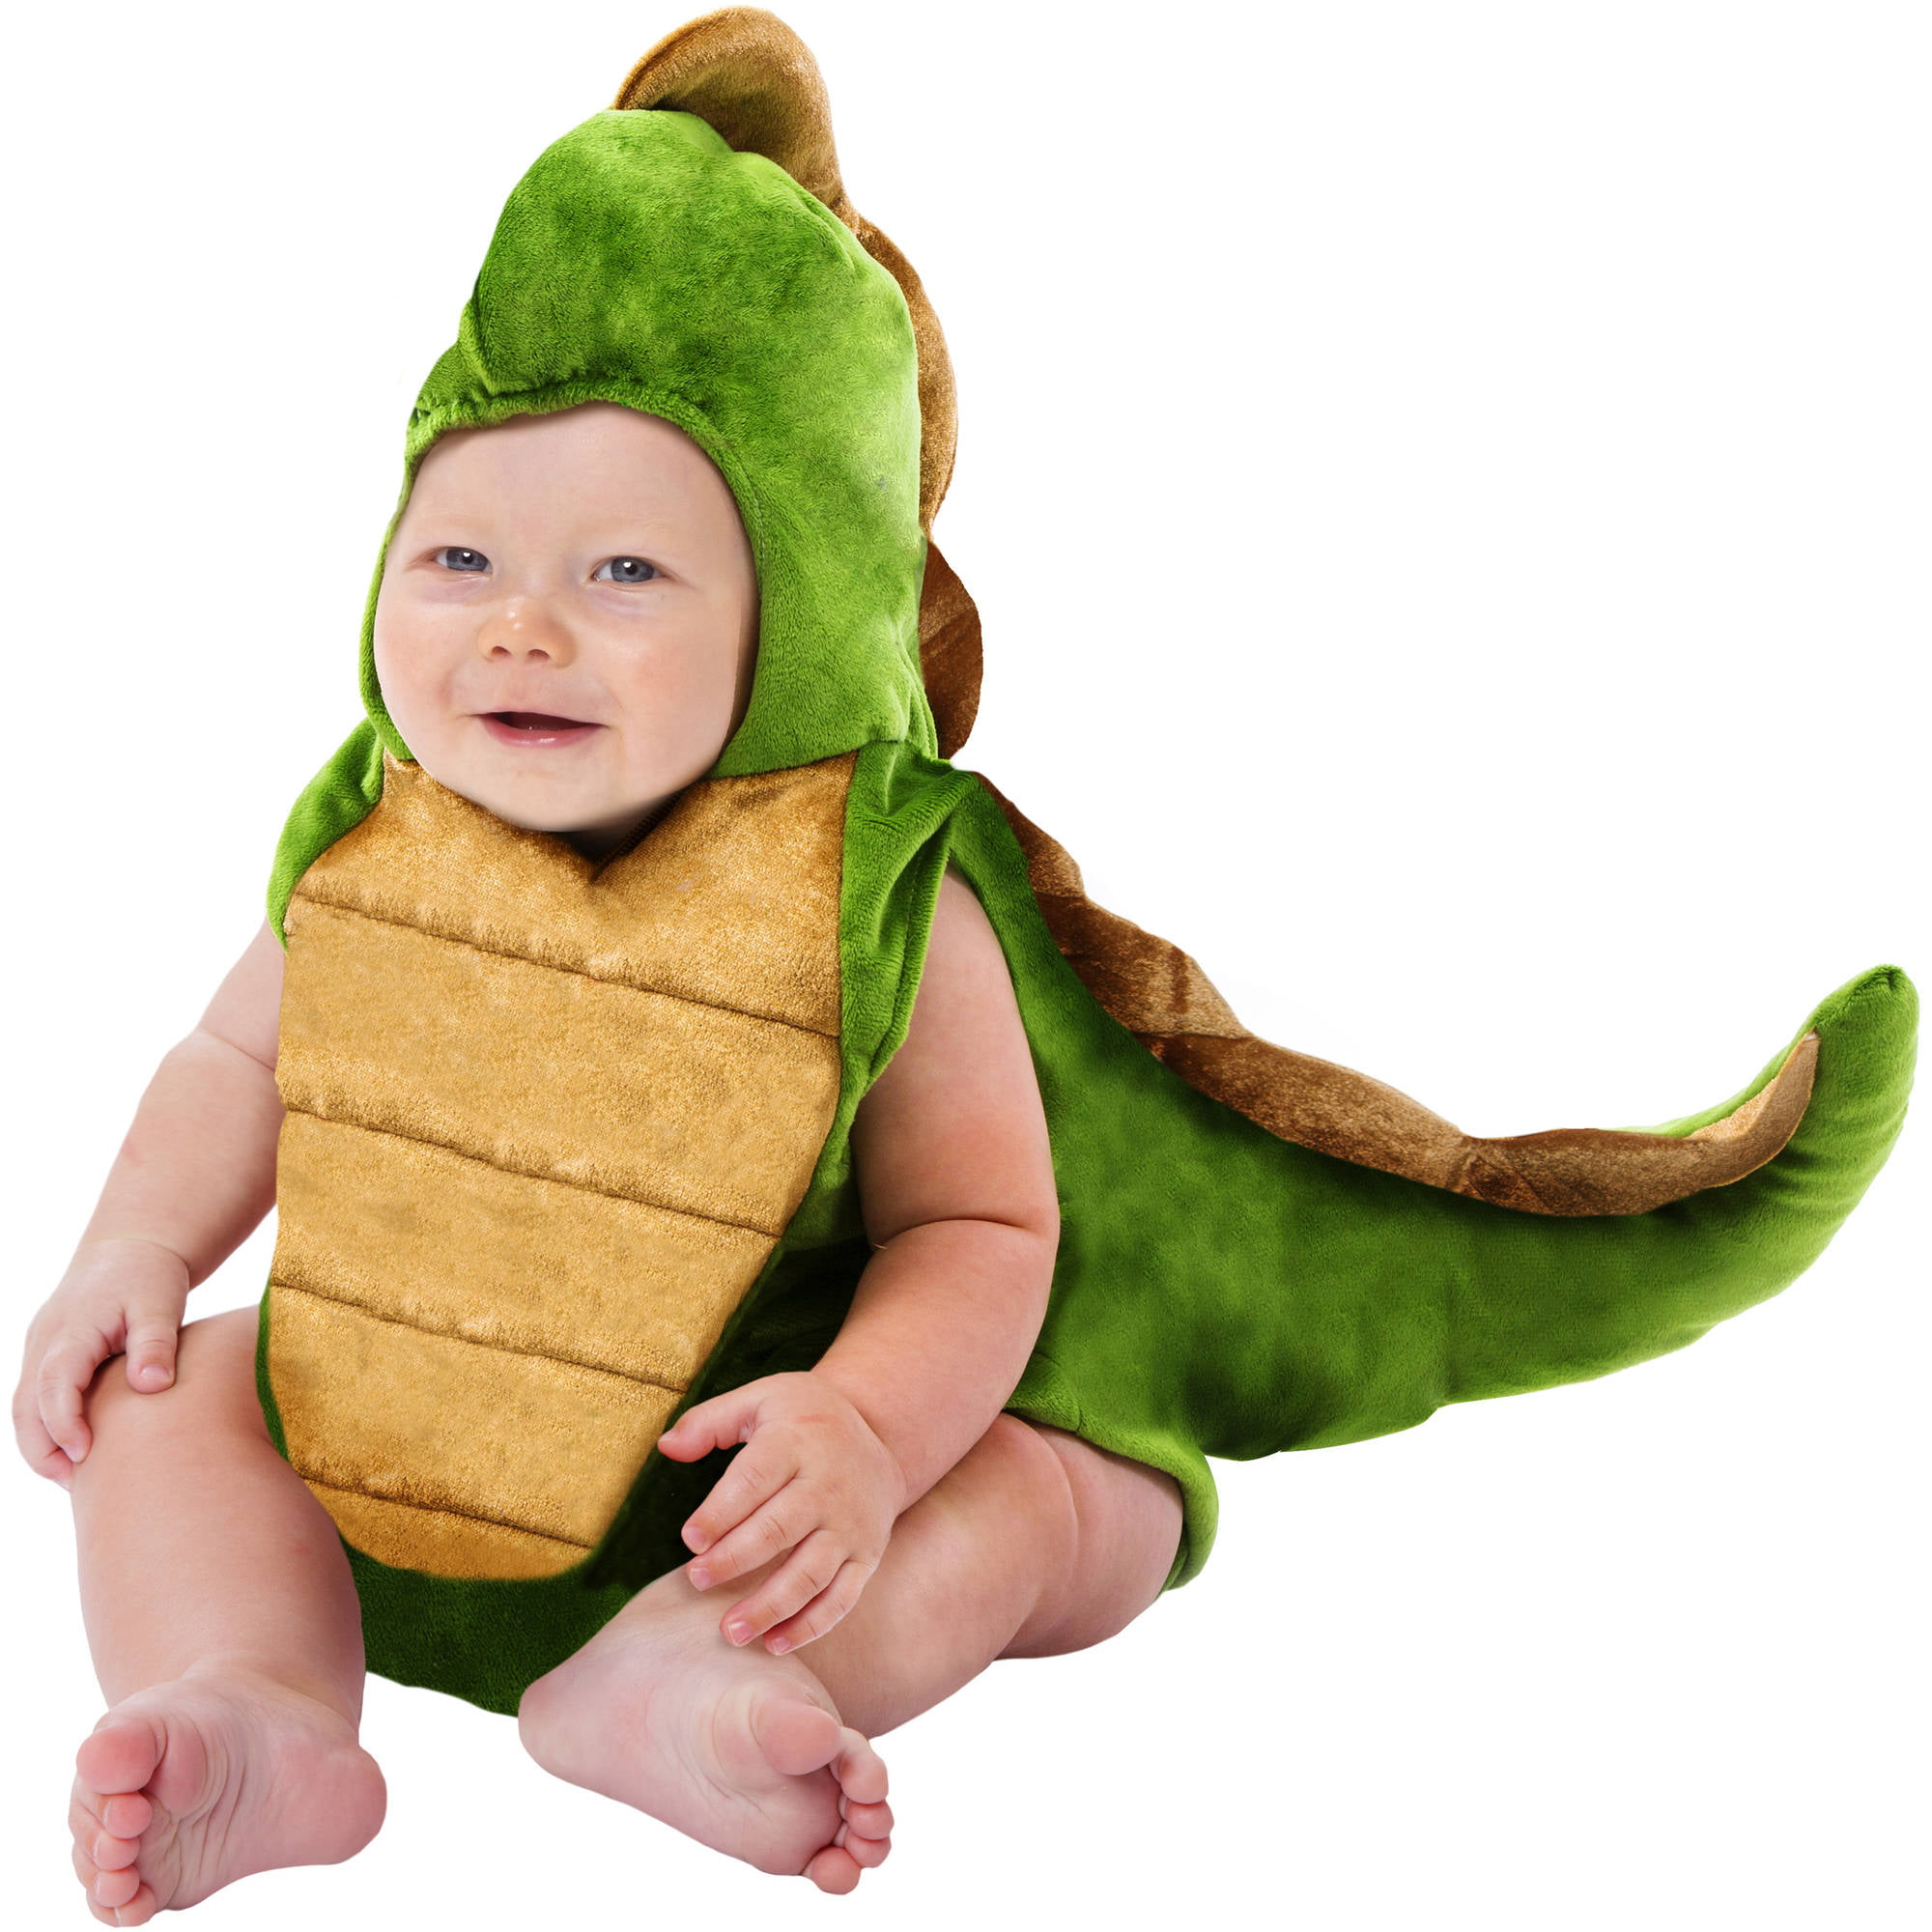 dinosaur bubble infant halloween dress up role play costume walmartcom - Walmart Halloween Costumes For Baby